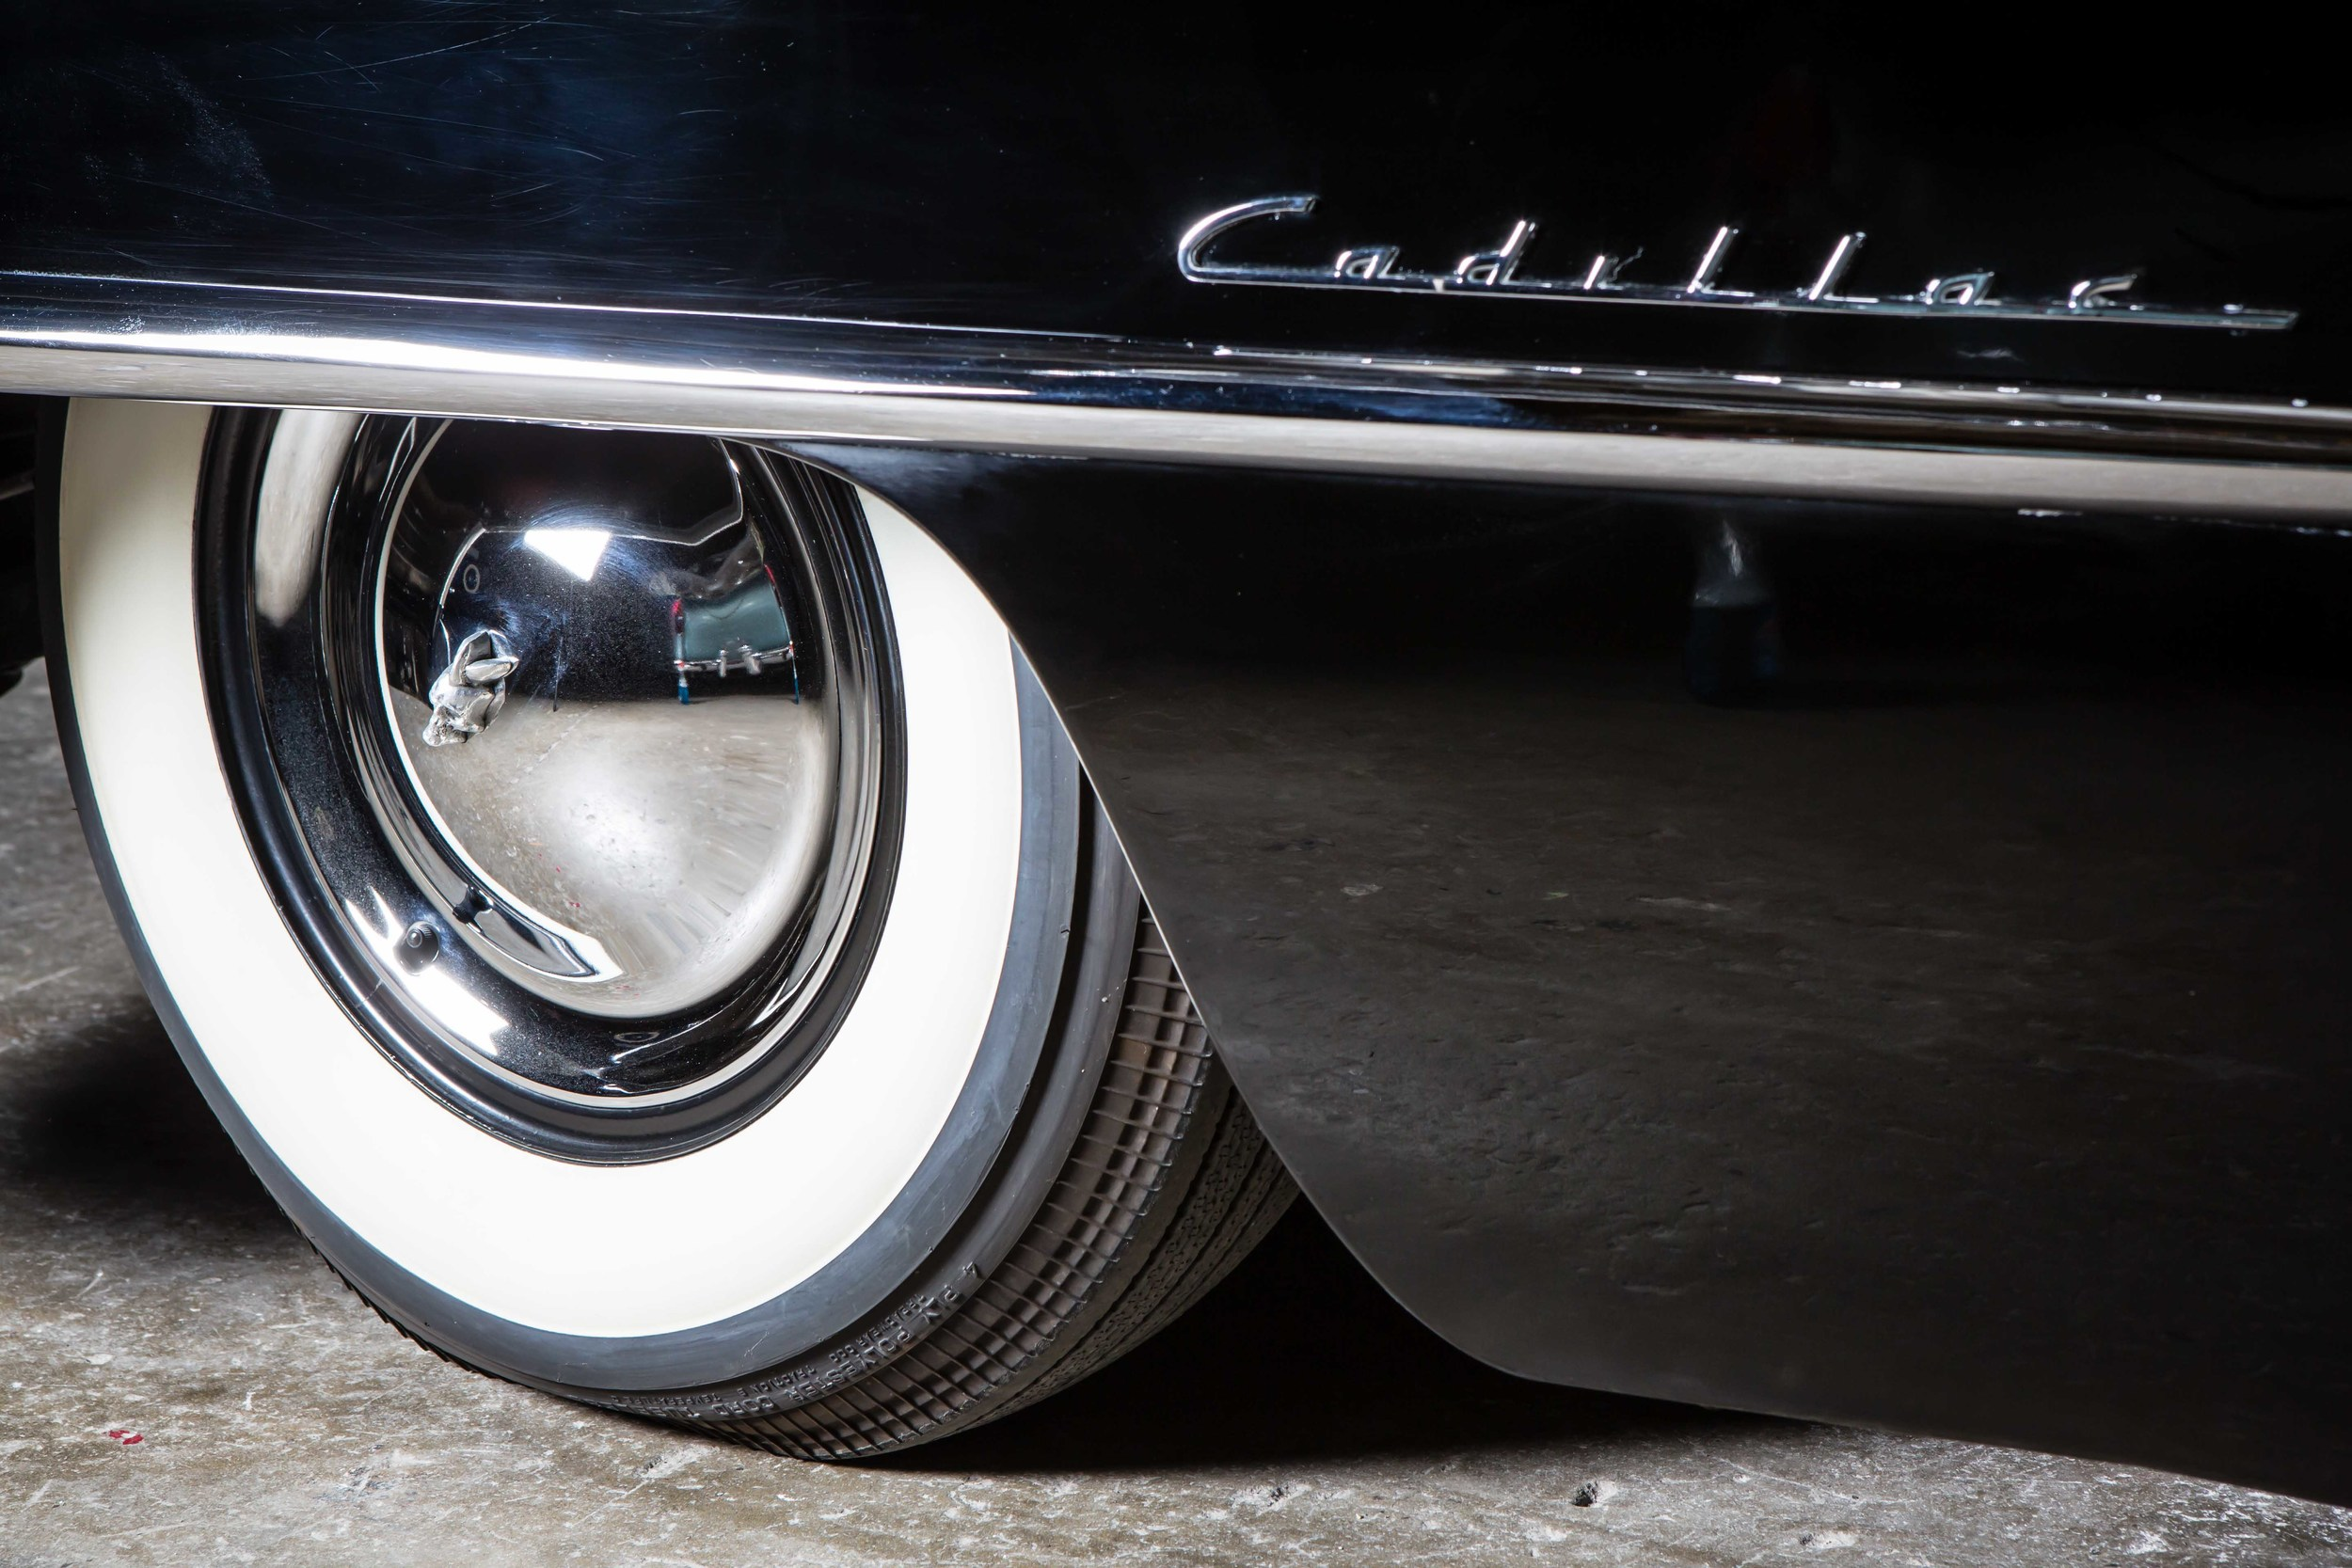 Anaheim Rod and Custom 1950 Cadillac -4.jpg